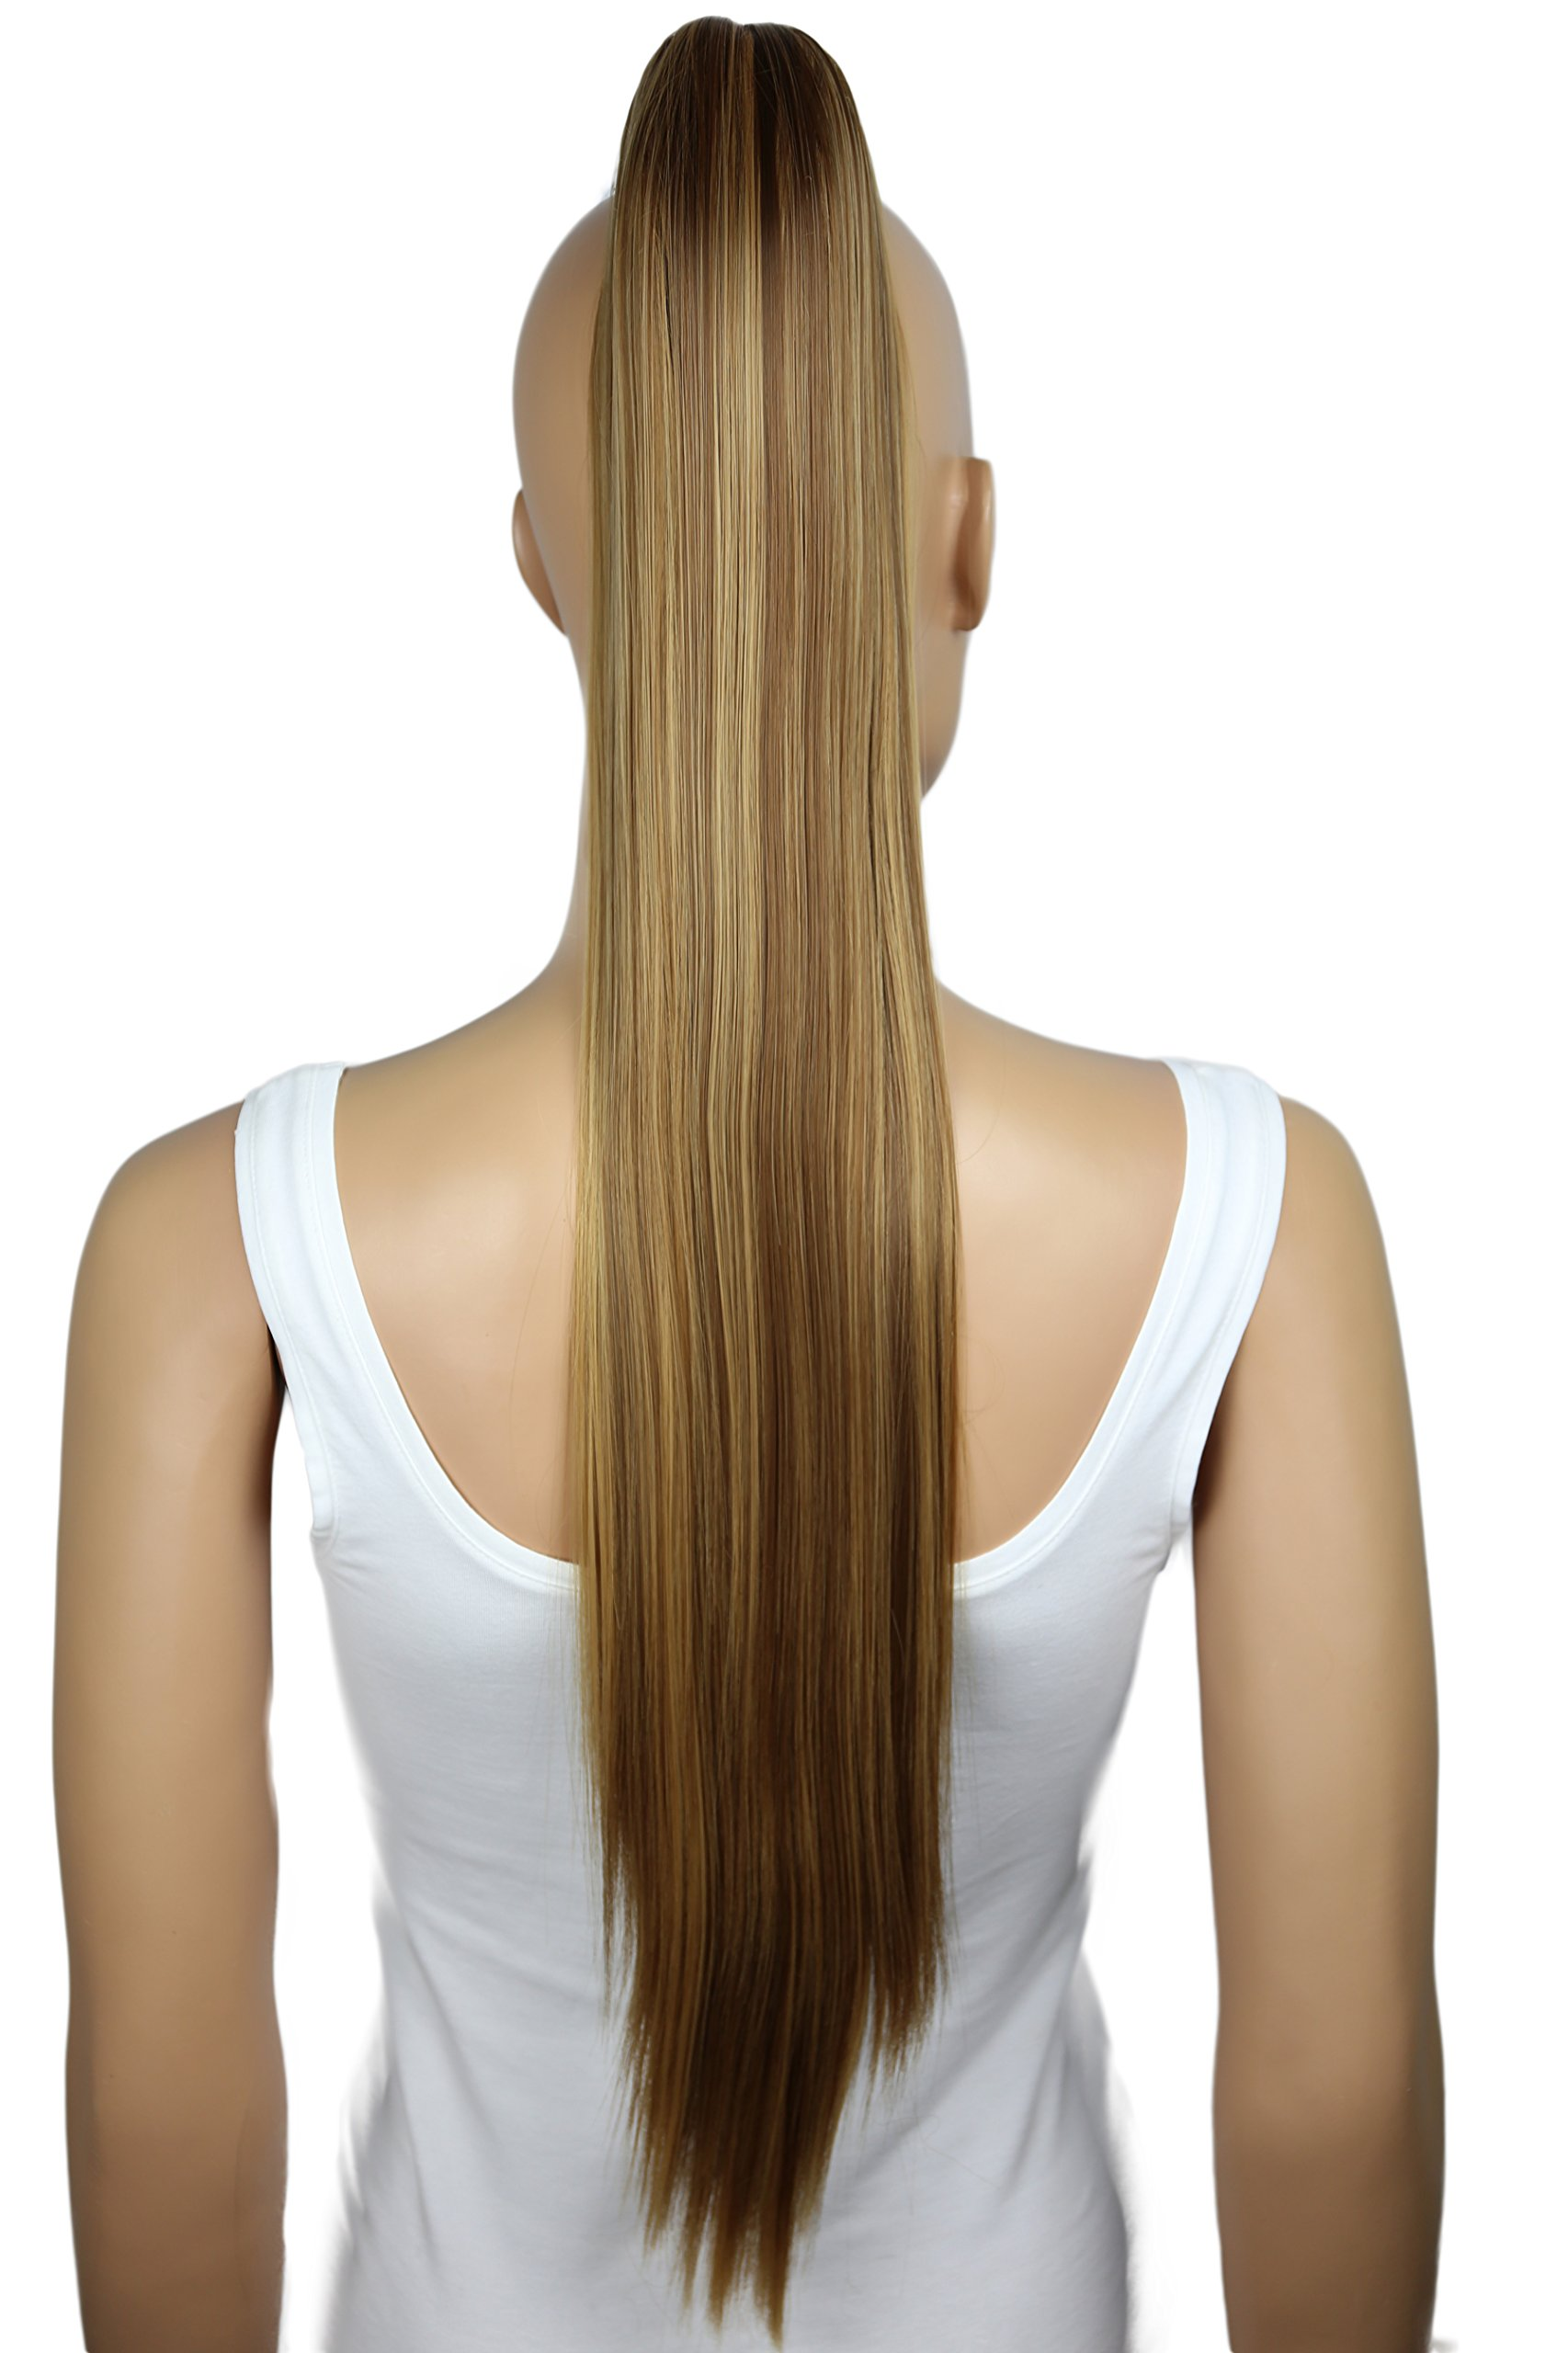 PRETTYSHOP Hairpiece Ponytail Clip on Extension Long hair smooth Heat-Resisting 27'' brown blond mix # 6H27 H165